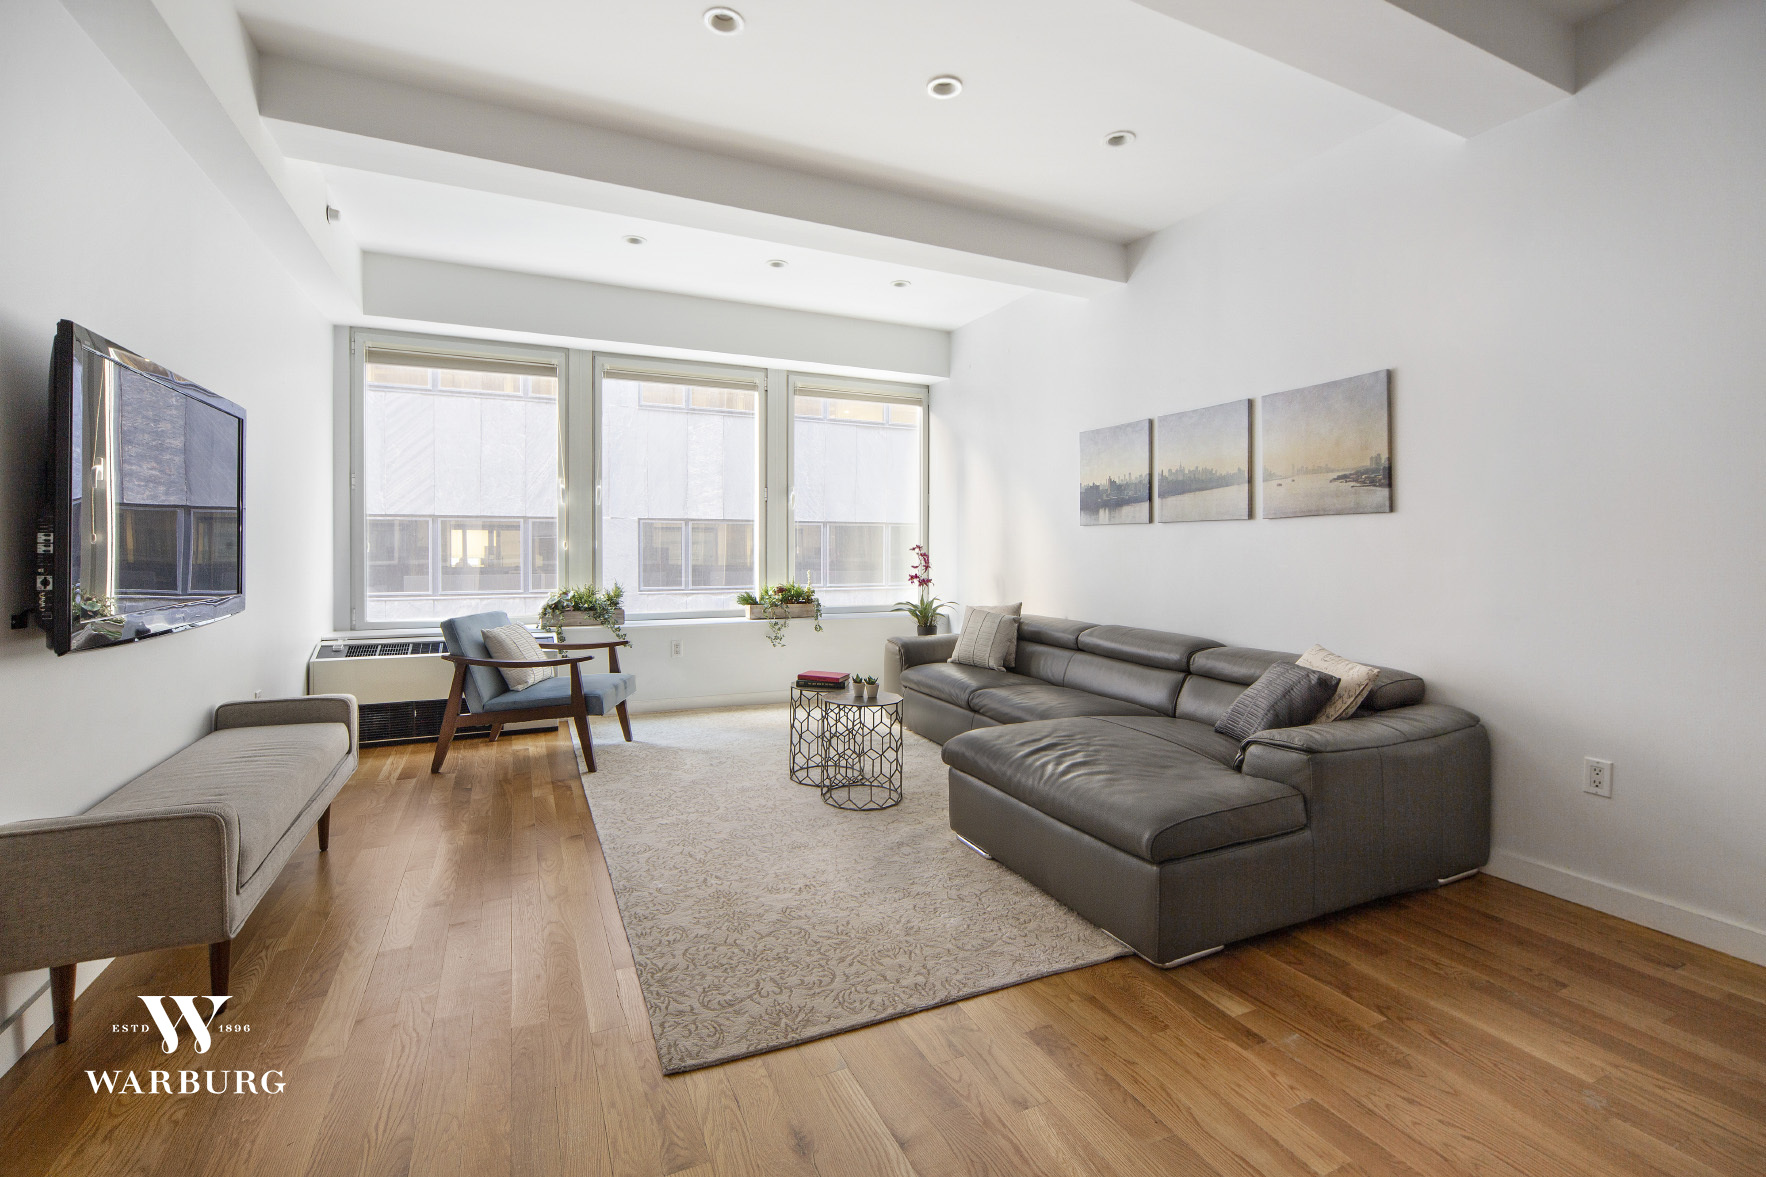 Apartment 6C at the contemporary Be@William Condominium, is an expansive and loft-like convertible 2-bedroom home, with generous ceiling heights and wonderful light from its huge, oversized windows. Renovated to perfection, this stunning 1 bedroom plus large home office/sleeping area spans 1072SF and boasts two full bathrooms and a unique layout with high beamed ceilings and vibrant northern exposures giving both natural and reflective light. An inviting foyer opens up into a spacious living and dining area which is perfect for entertaining or those quiet evenings at home. The large, open chef's kitchen was completely reimagined and remodeled by the current sellers, featuring Silestone countertops, custom white lacquer cabinetry and chic appliances, including a white lacquer Liebherr refrigerator and Miele dishwasher. The size is perfect for the at-home chef and those who love to cook with its phenomenal counterspace and generous pantry storage. A hidden Bosch washer/dryer completes this fantastic kitchen. The king-sized master bedroom enjoys a custom walk-in closet and a beautiful en-suite bathroom with a double vanity sink, classic white subway tile and modern fixtures. The home office area can easily double as a queen-sized second bedroom and it's adjoining bathroom is tastefully graced by a glass enclosed shower and chic subway tile. With white oak plank floors throughout, a wall of windows -  featuring Hunter Douglas window treatments with a blackout shade in the master bedroom - an abundance of closet space and an airy loft feel, apartment 6C is a wonderfully unique and sophisticated home. A separate storage room with custom Elfa shelving on the same floor also conveys with this unit! A true rarity in New York City.One of the Financial Districts' premier condominiums, Be@William is located at the heart of architecturally distinct Fidi. The building offers a 24 hour doorman and concierge service and a sleek PH amenities level which includes the double-height Sky Lounge with indoor and outdoor fireplaces, a pool table and a beautifully landscaped terrace with a wet bar and barbeque grill, perfect for upcoming summer evenings! A state of the art fitness center, bike storage, free WiFi and cable television are also conveniently offered. Just steps to the 2/3/4/5/A/C/E/R/W/J/Z subway lines for easy access into the heart of Manhattan or Brooklyn, 90 William is also just a short walk to the restaurants and shopping of the historic South Street Seaport. There's easy access to run, walk or cycle the 18 miles of continuous riverfront green-way that stretches from 14th street, south under the Williamsburg, Manhattan and Brooklyn bridges, through the lush Battery and Hudson River Parks, and up the Hudson all the way to the GWB. For foodies, get ready to enjoy local restaurants such as Crown Shy, Cipriani's, Felice 15 and Giardino D'Oro, just to name a few. Nightlife is just around the corner including Stone Street, the new Pier 17 (featuring live performances on the roof-top stage which we'll hopefully be able to enjoy again soon!) and countless smaller establishments to explore. The new FiDi has become a destination and is truly the ideal, downtown location.